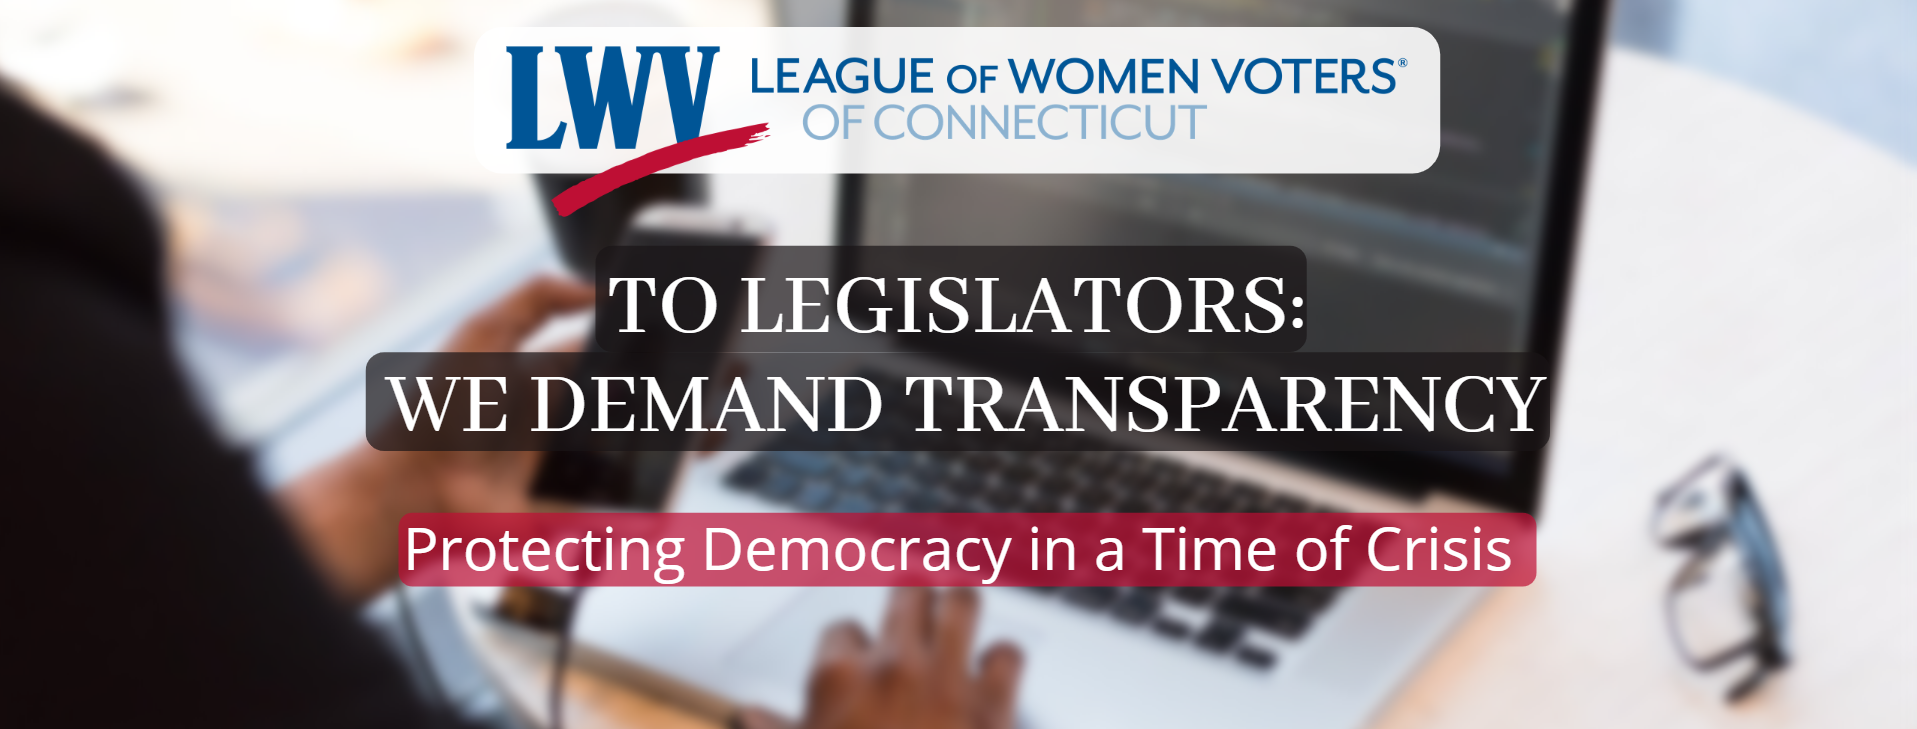 LWVCT Letter to Legislators Demanding Transparency During COVID-19 Emergency image